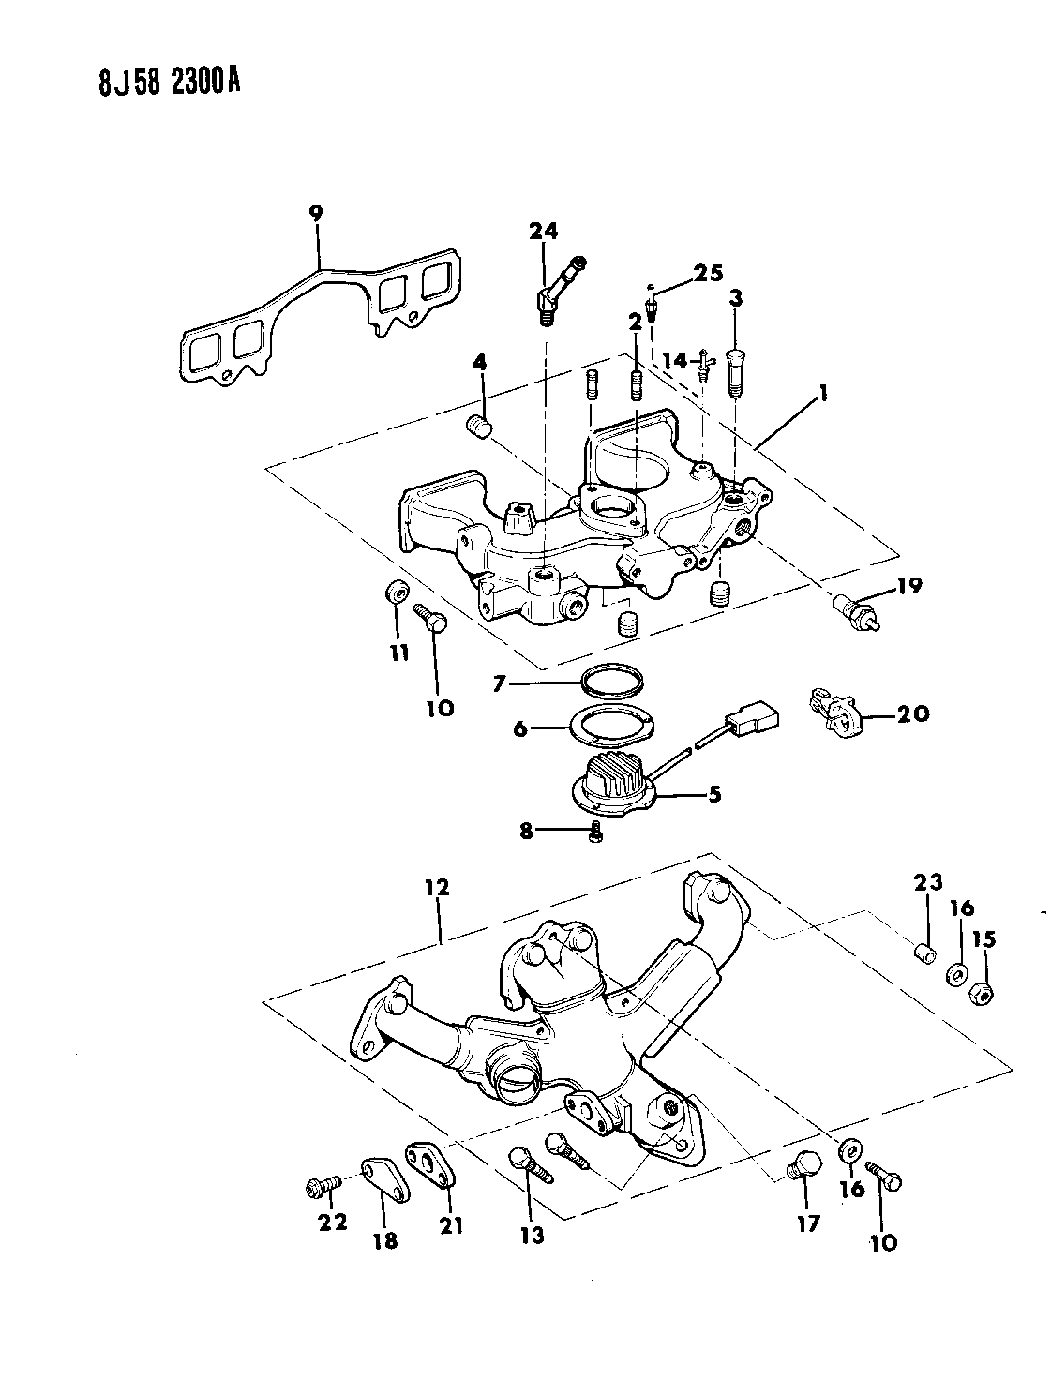 1989 Jeep Wrangler Manifold Intake Exhaust Engine Diagram Thumbnail 5